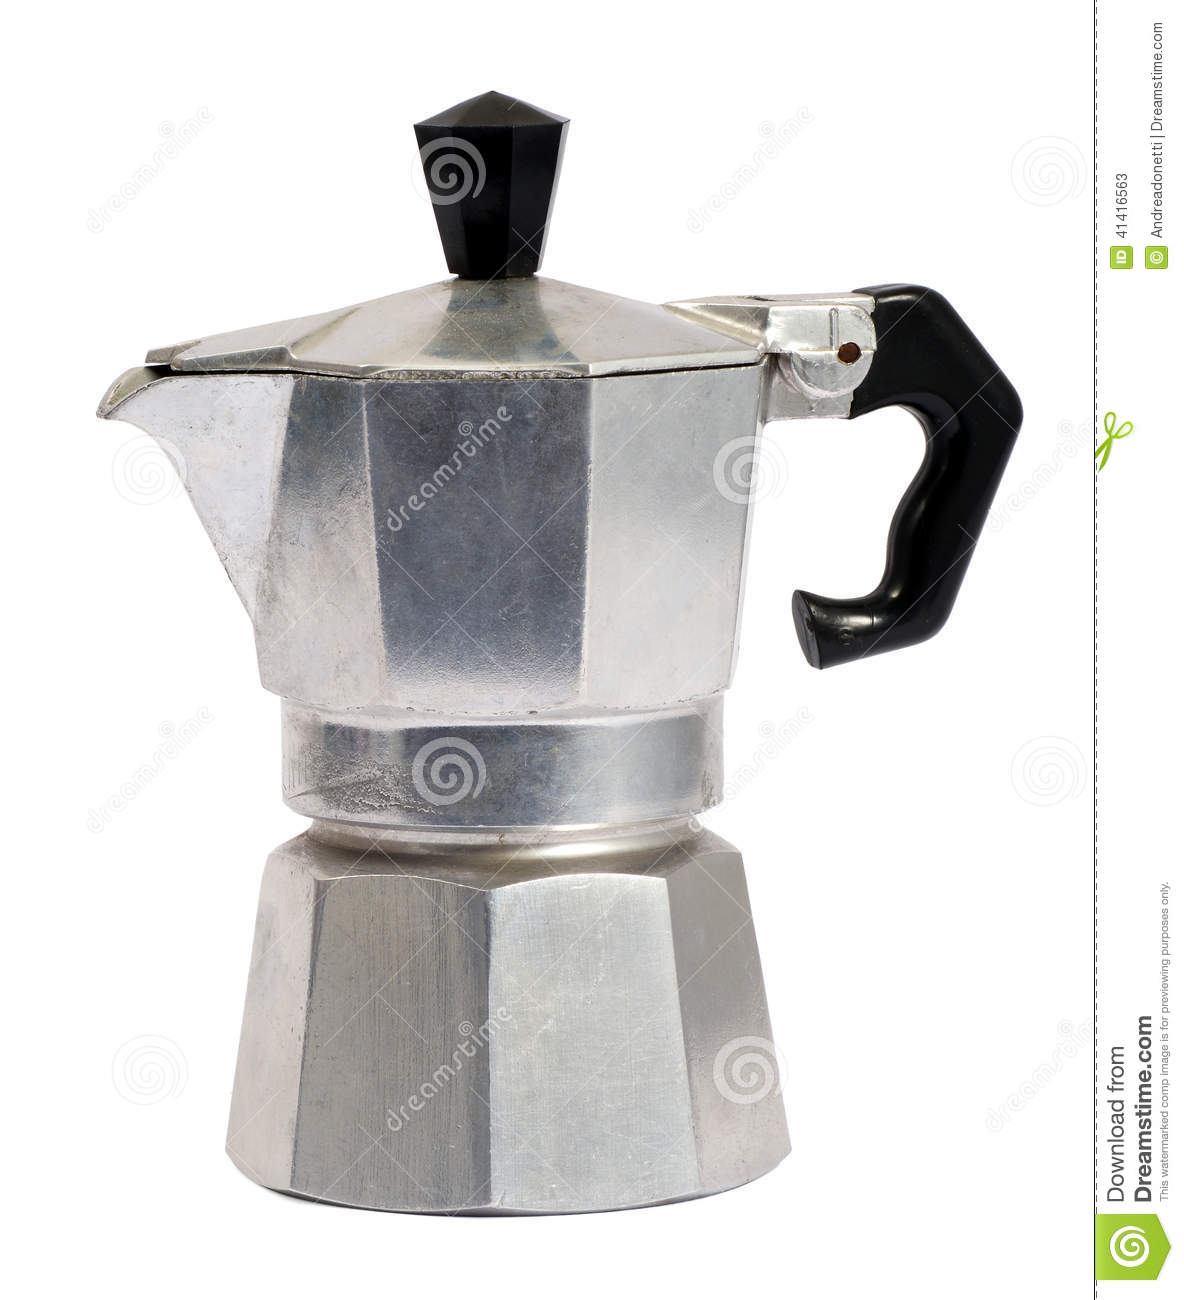 how to fix coffee maker hot plate